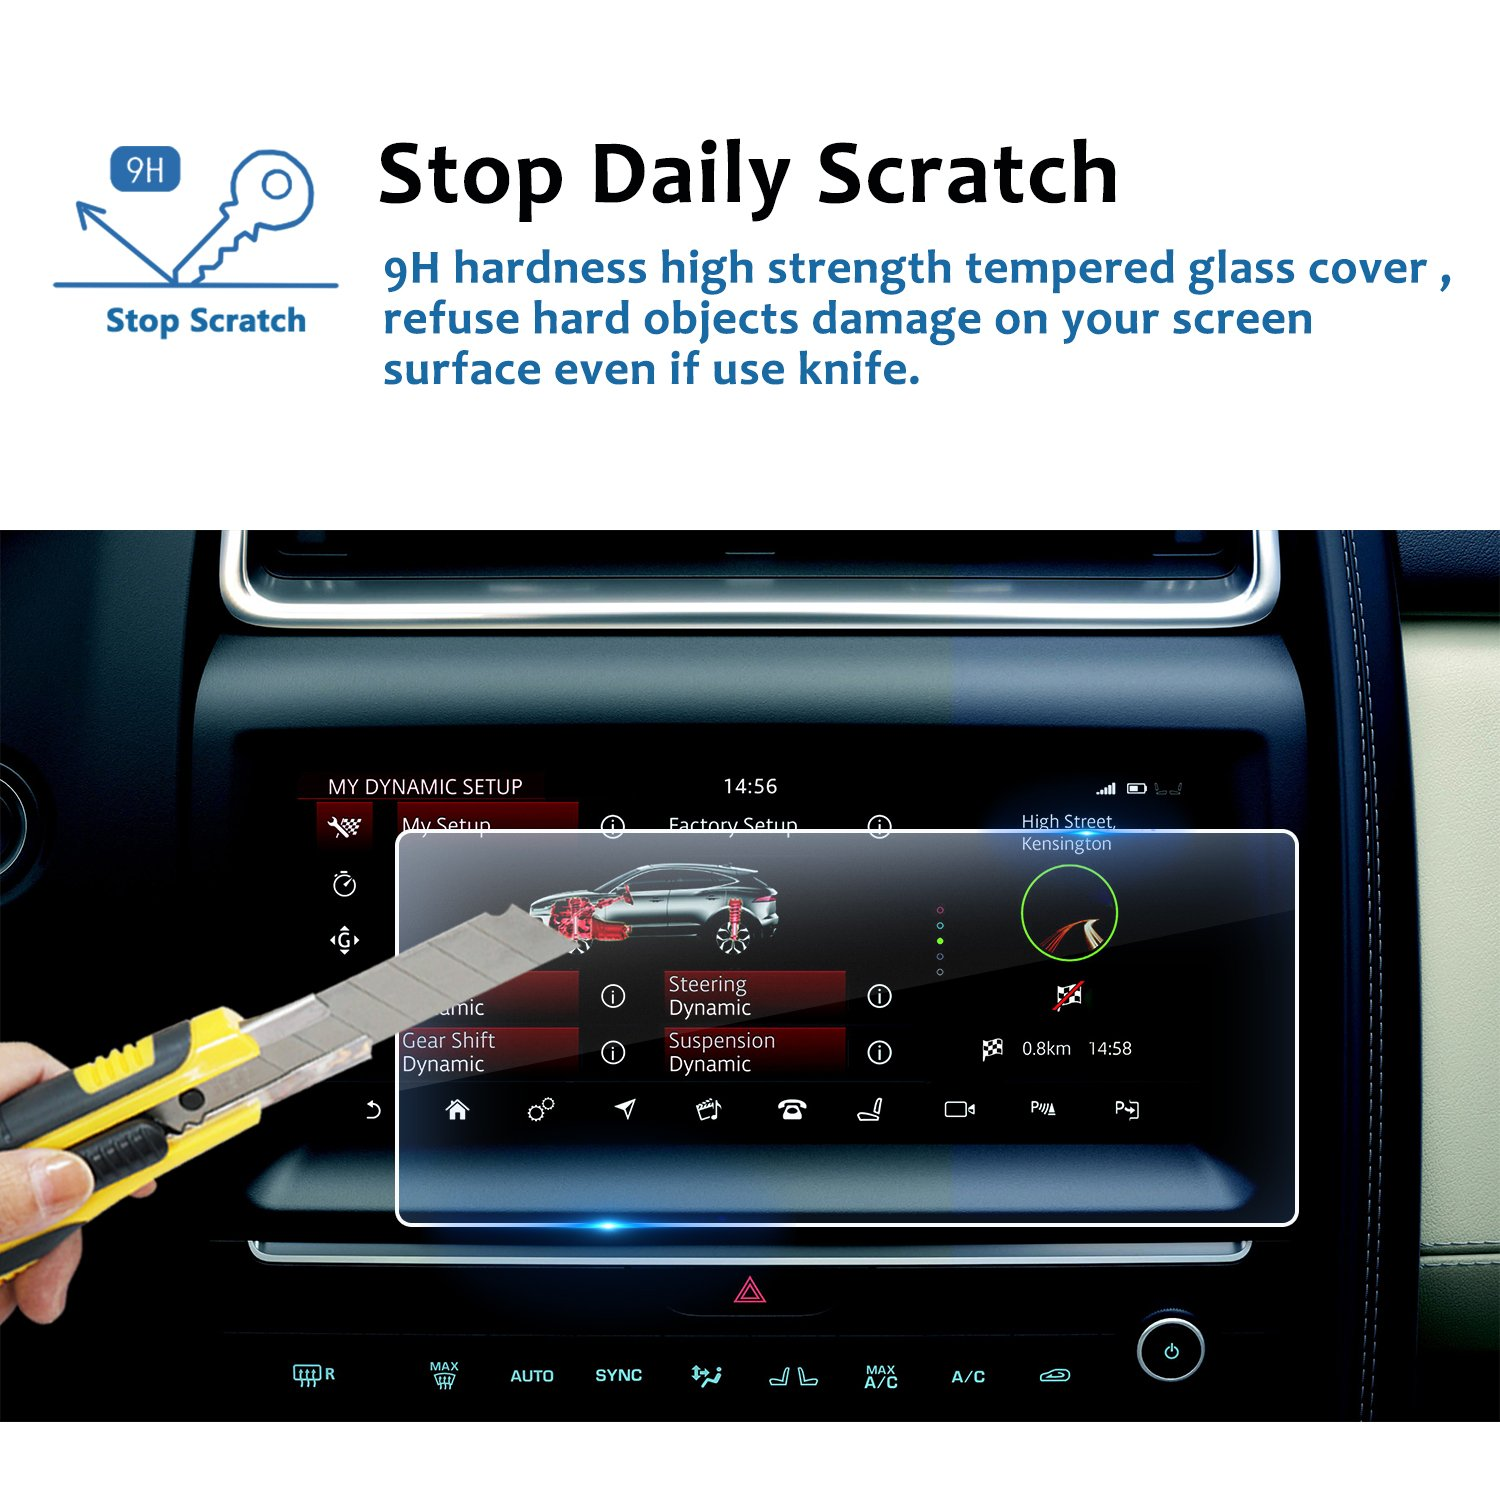 LFOTPP Tempered Glass In-Dash Clear Screen Protector LiFan 2018 Jaguar E-Pace InControl Touch Pro 10.3 Inch Center Touch Screen Protector